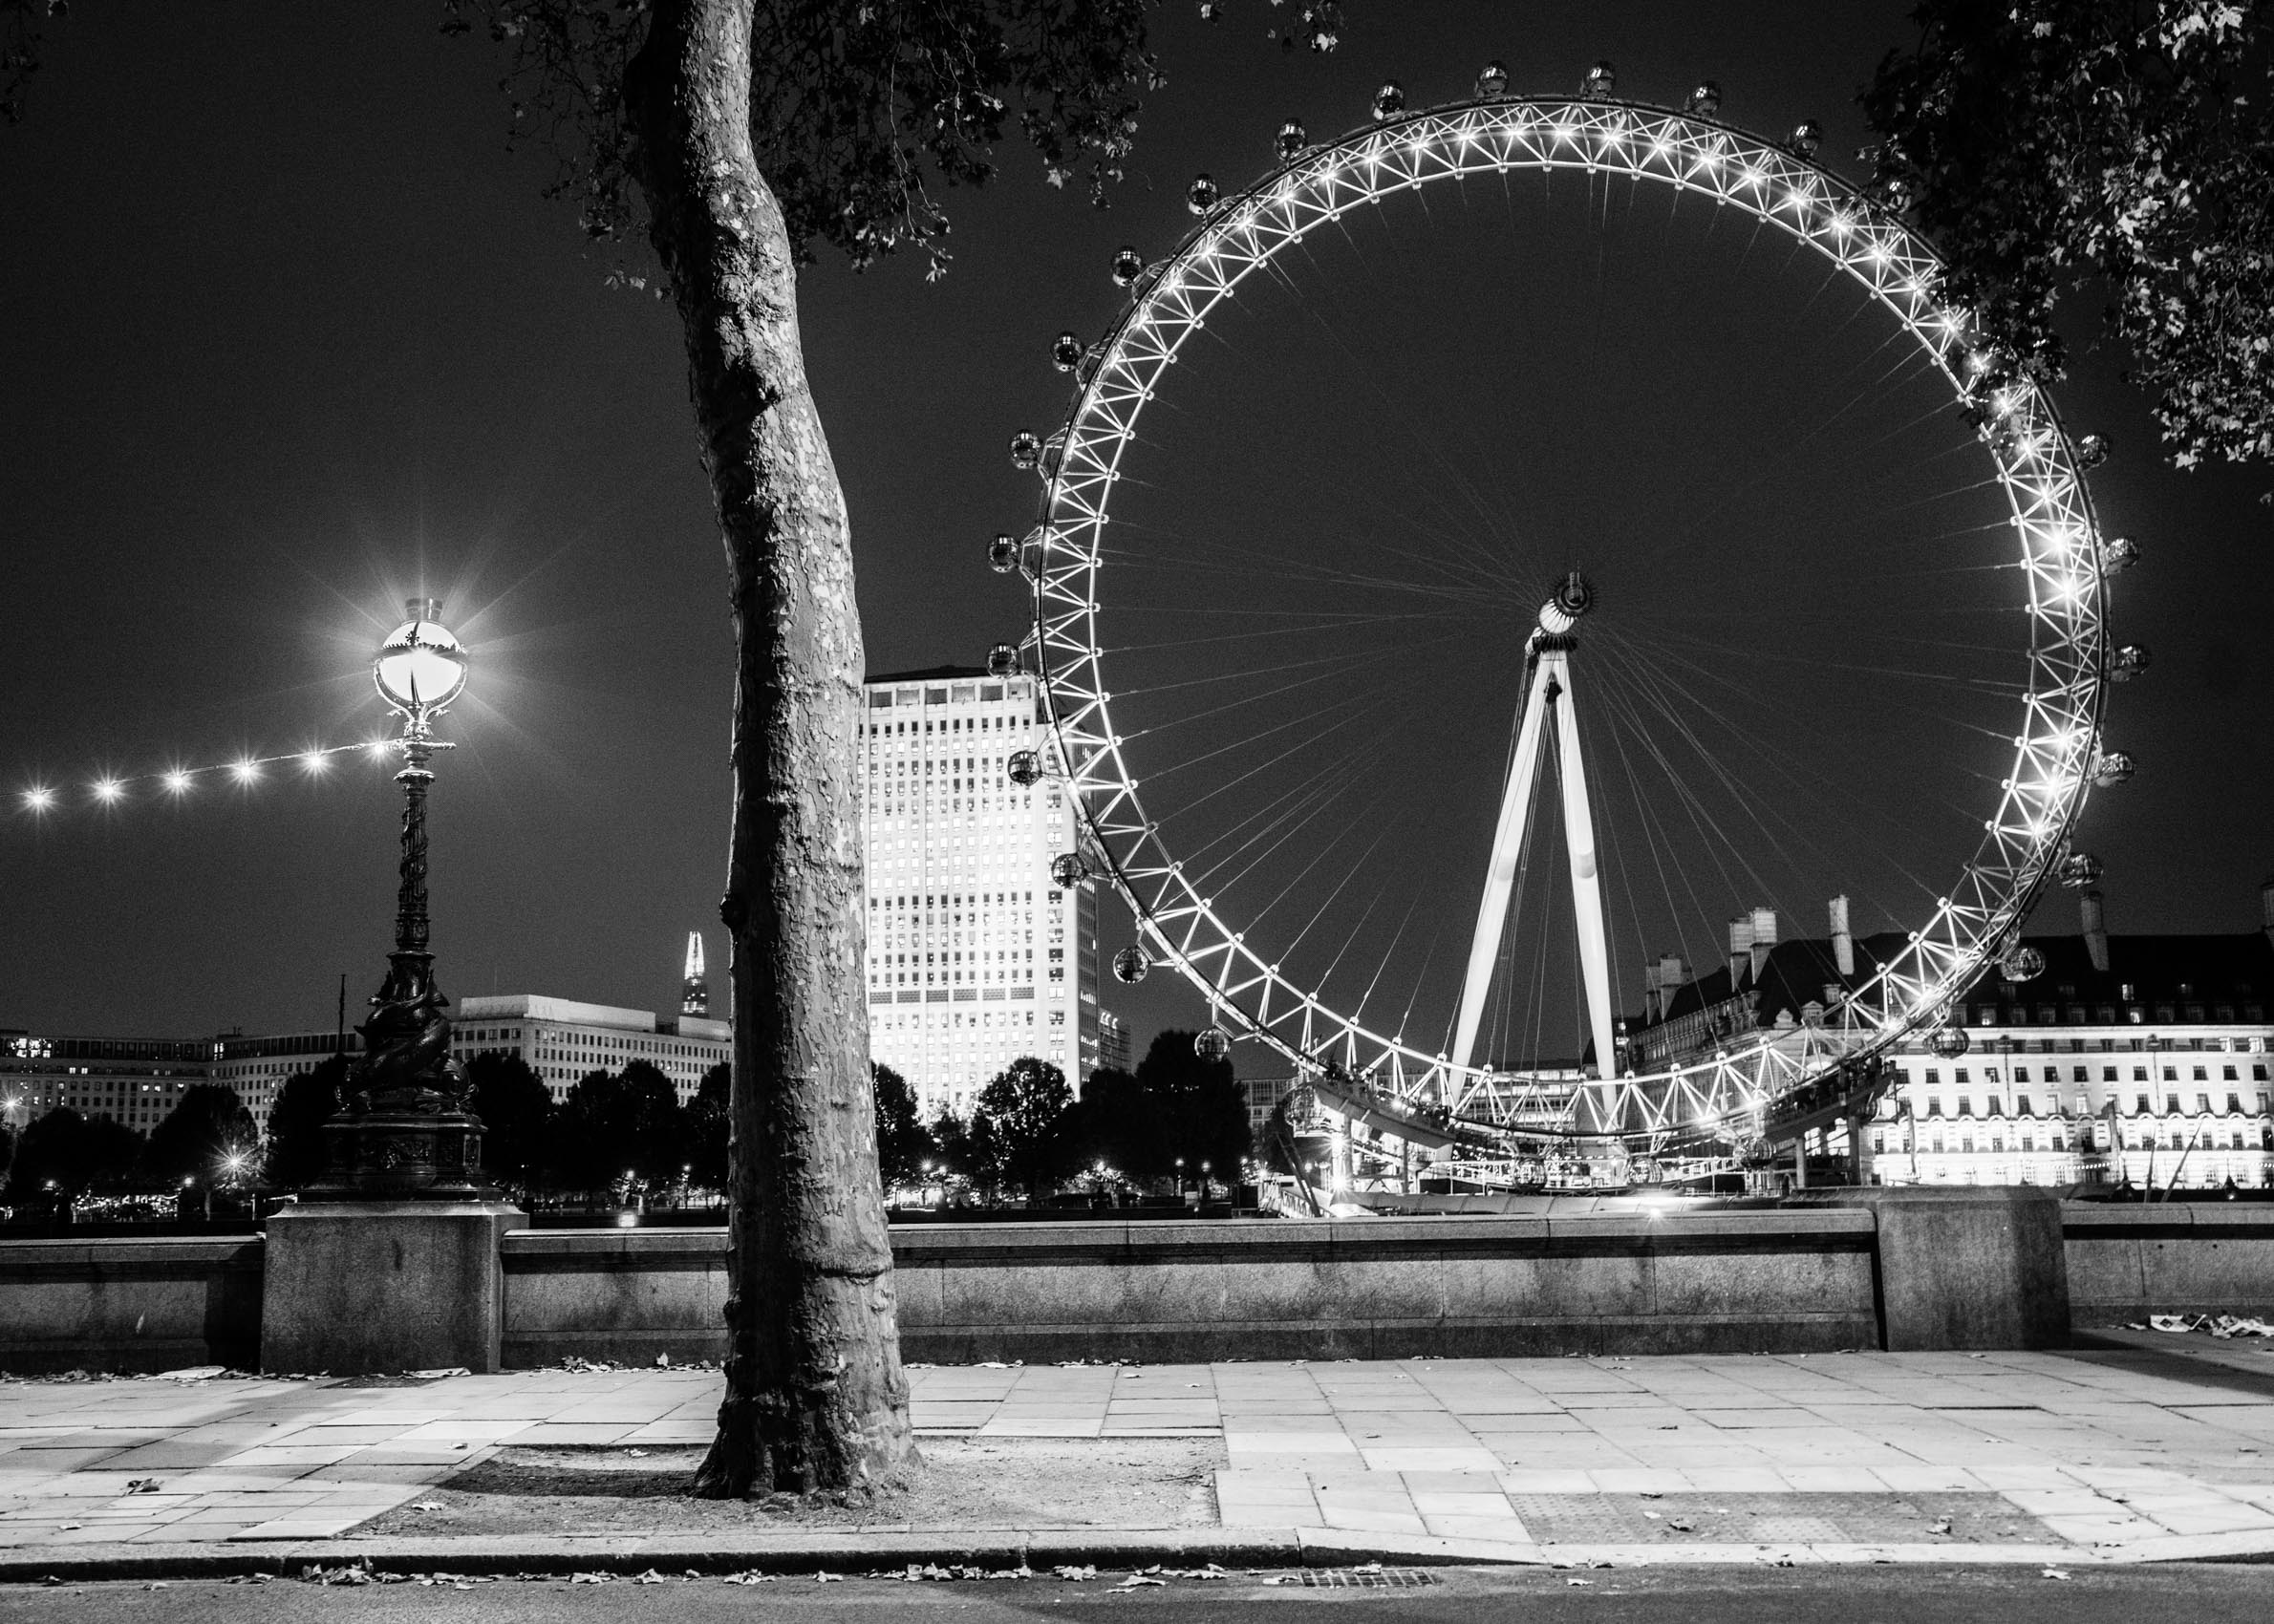 Los Angeles Street Photographer - London Eye at night by Ray Kachatorian